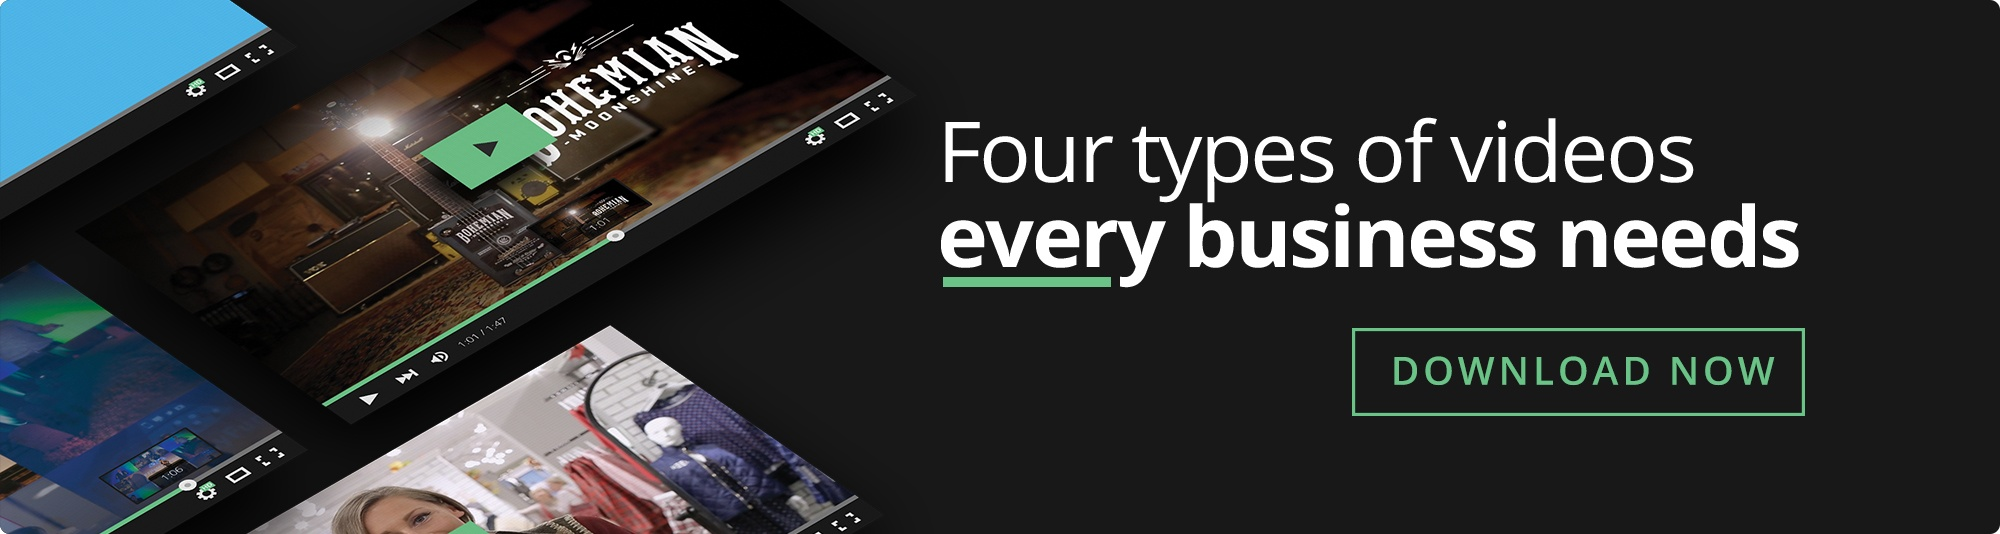 Four Types Of Videos Every Business Needs - eBook